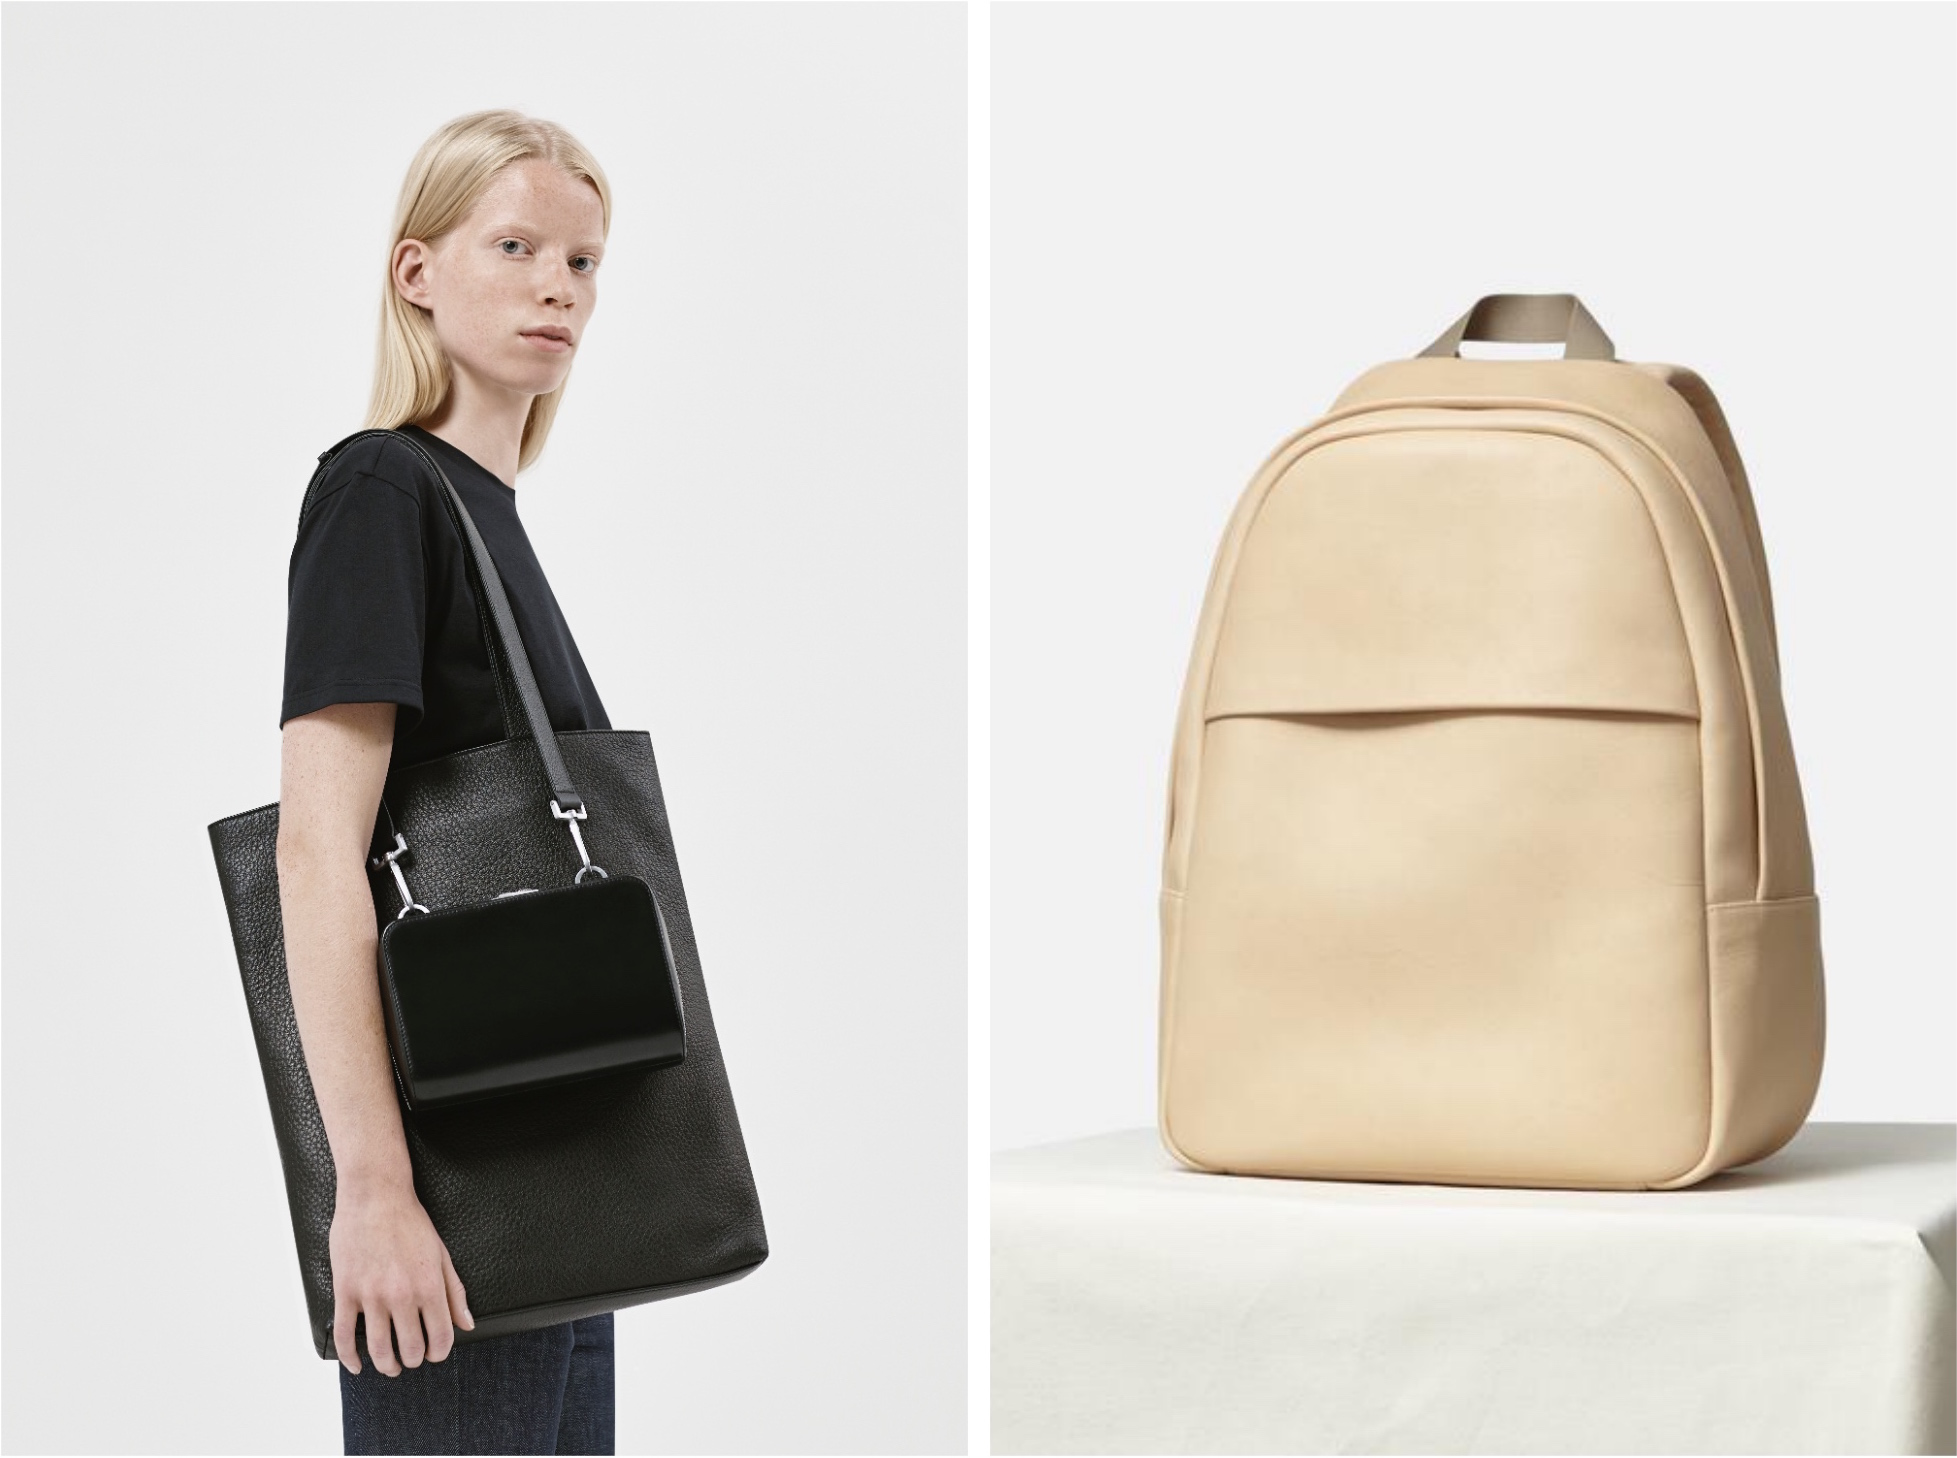 silent goods ethical leather bag